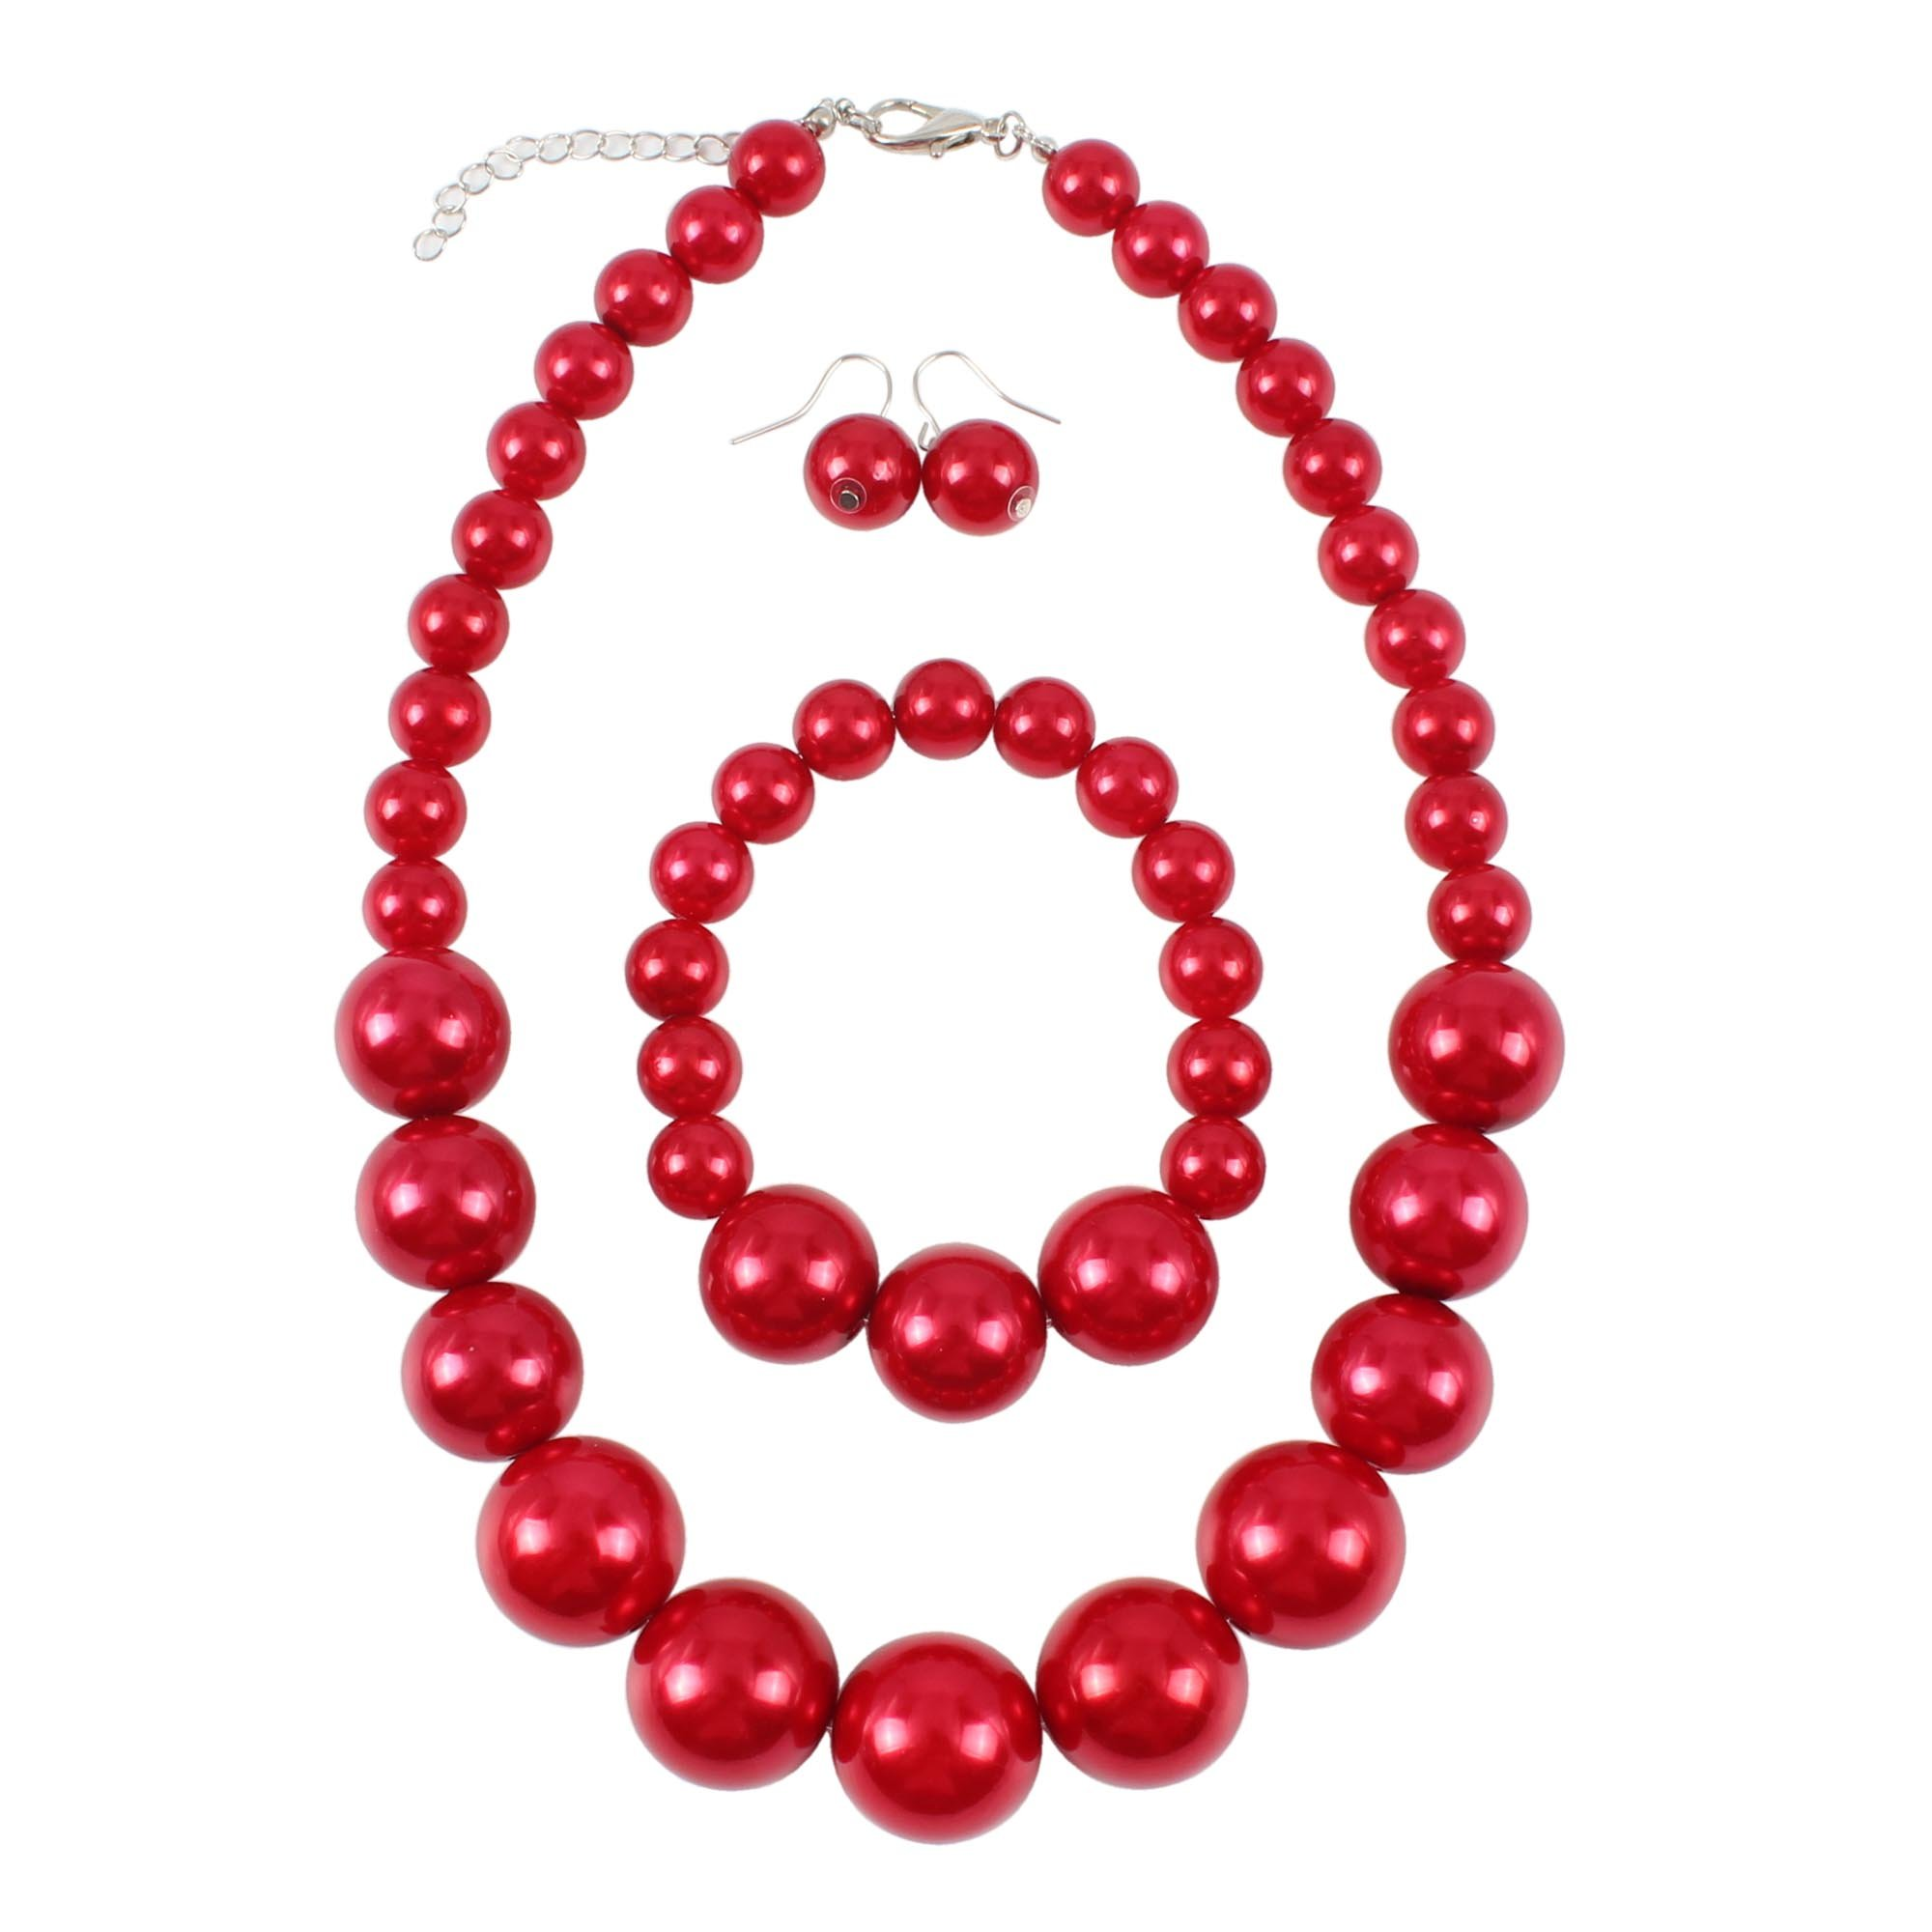 Shineland Simple Large Big Simulated Pearl Statement Necklace Bracelet and Earrings Jewelry Set (Red)